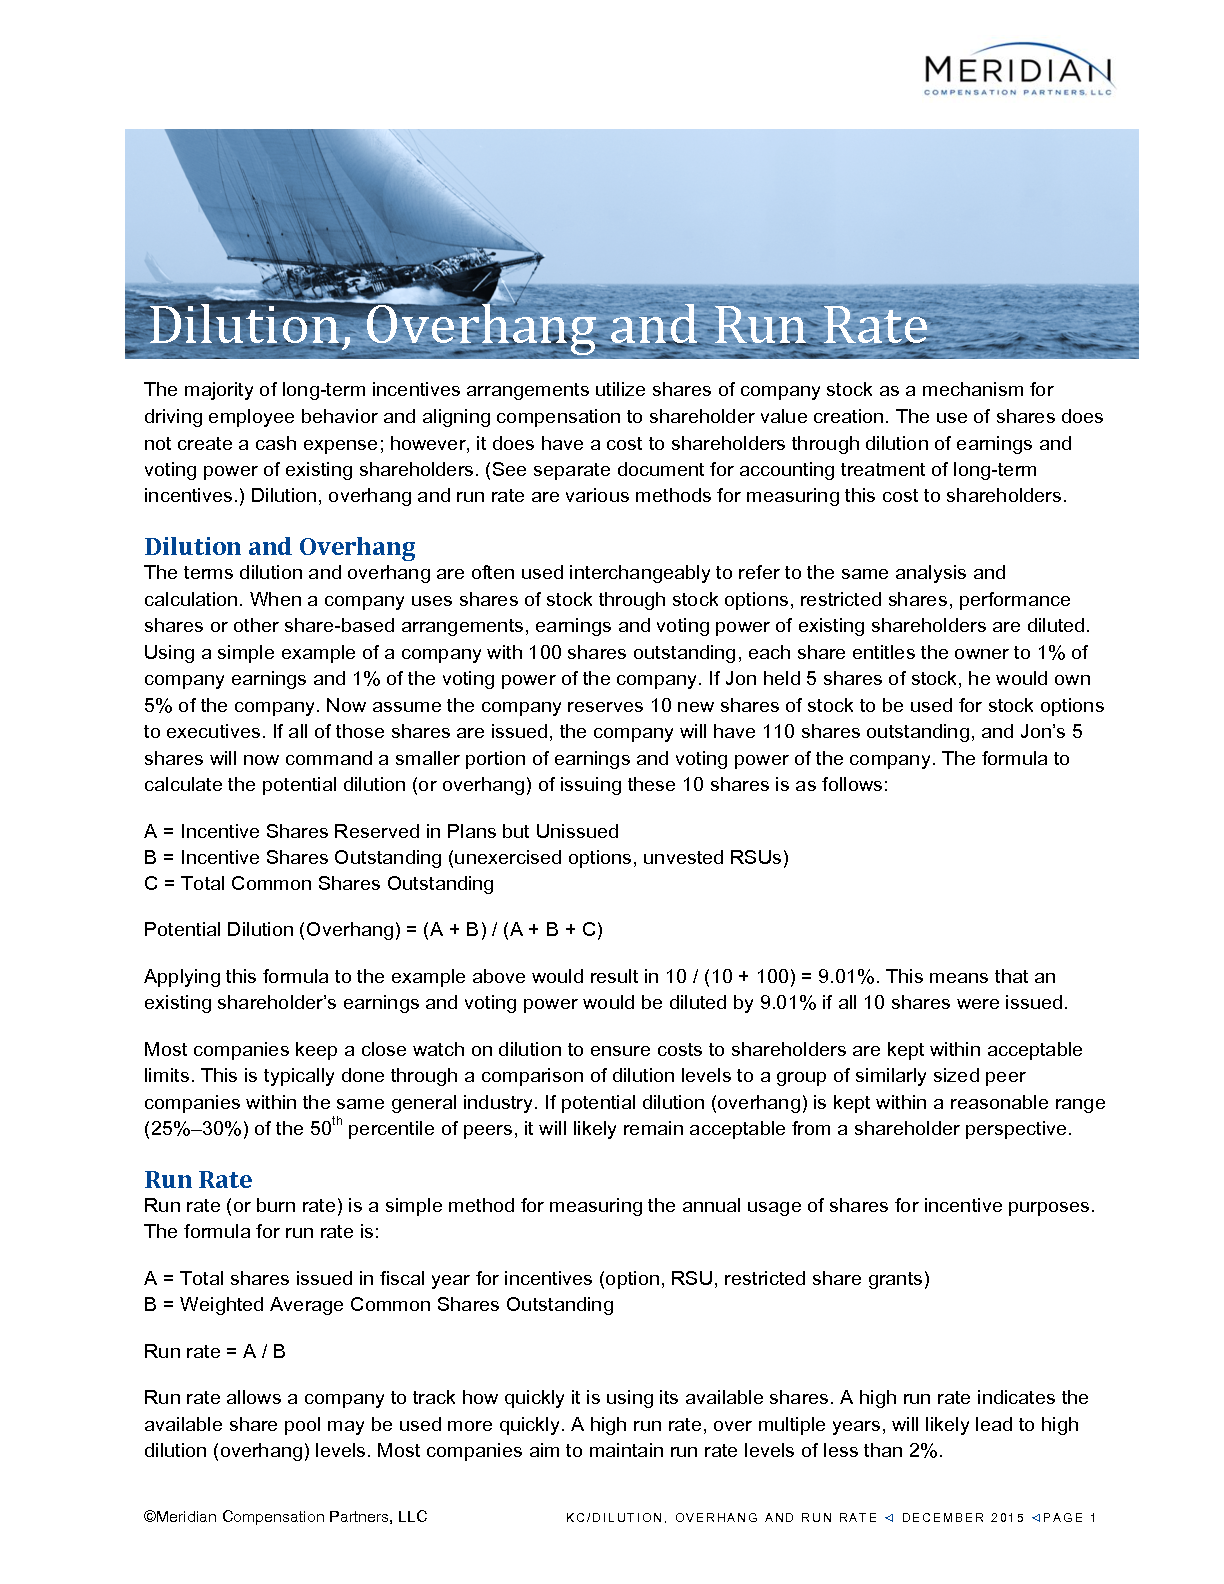 Dilution, Overhang and Run Rate (PDF)